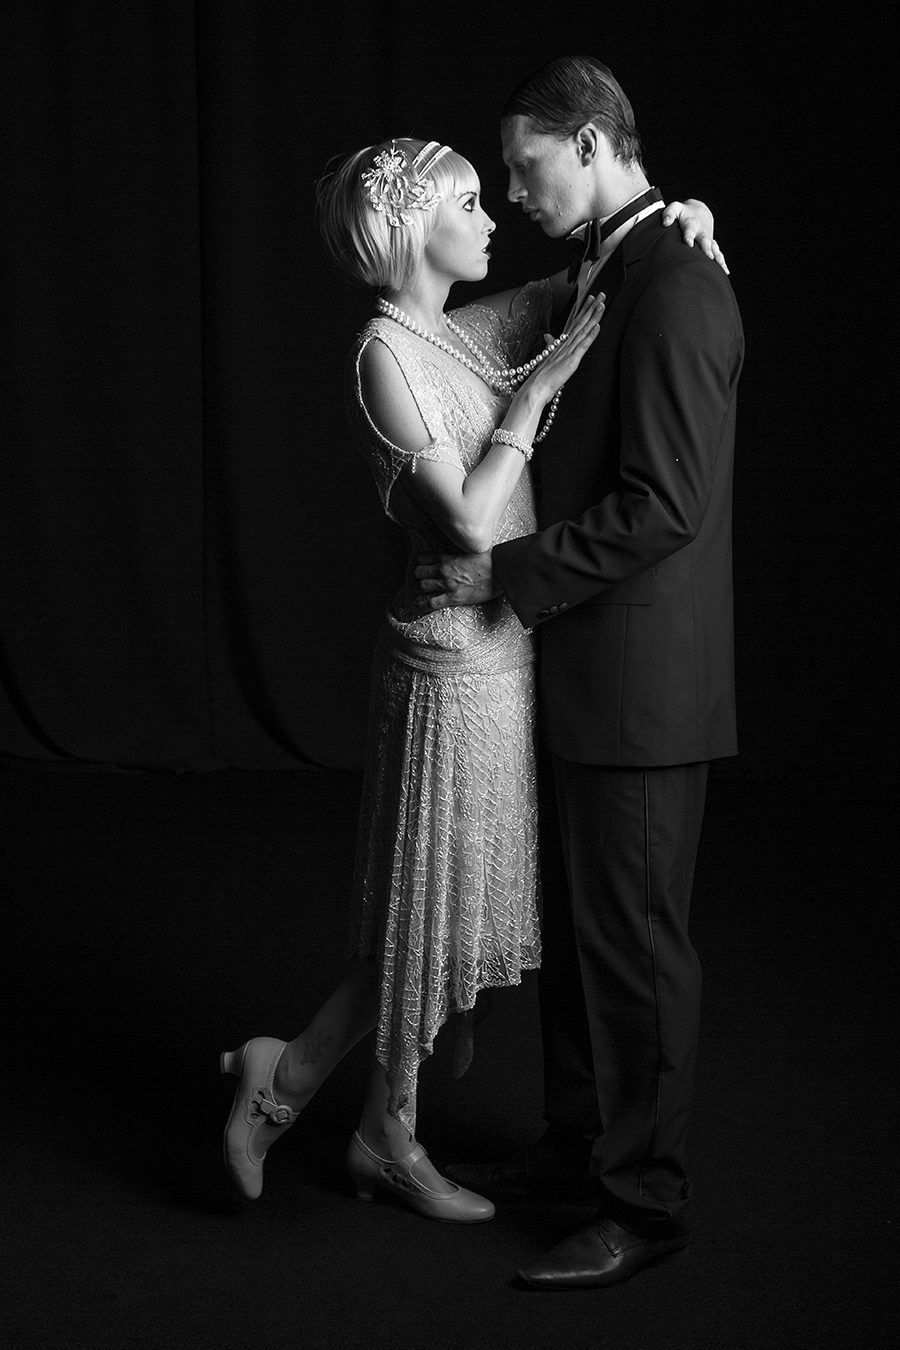 1920's Themed Shoot @ Edge Photographic Studio 06 / Photography by GaryMac Photography / Uploaded 14th July 2013 @ 10:27 PM